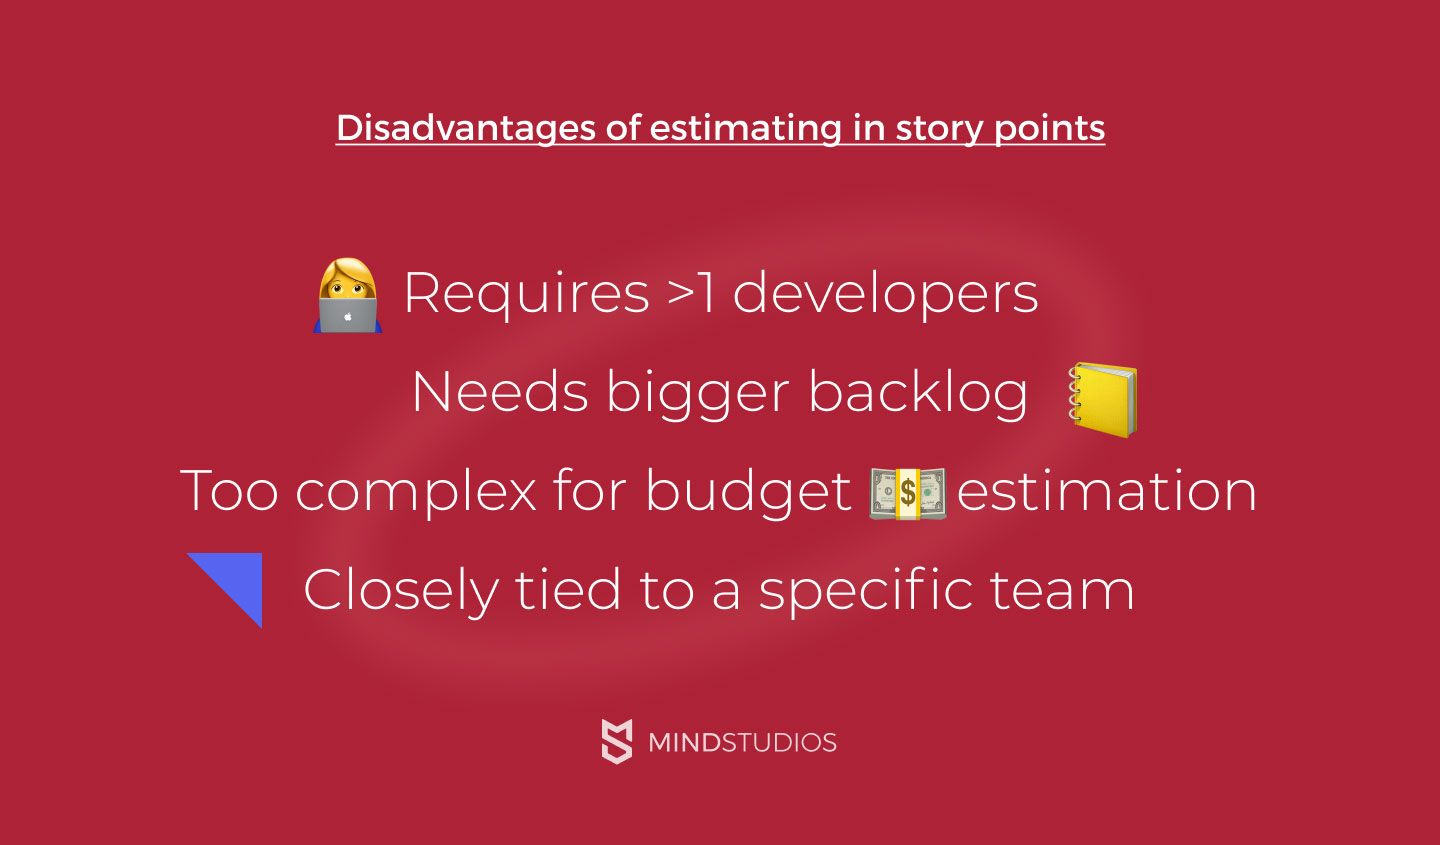 Disadvantages of estimating in story points